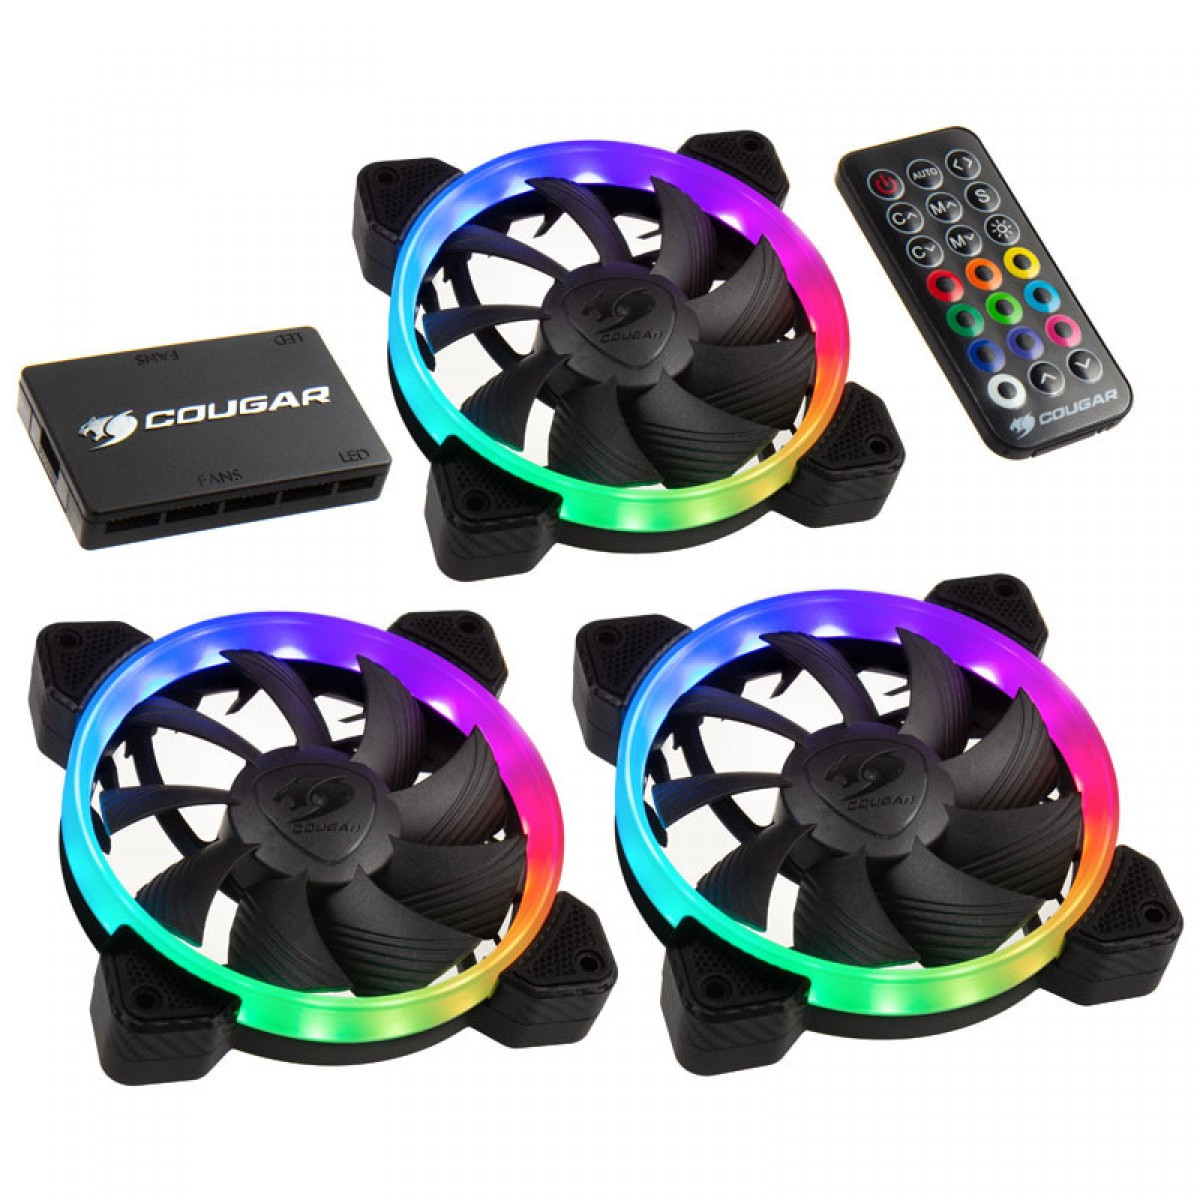 Kit Fan com 3 Unidades Cougar Vortex, RGB, HPB, 120mm, 3MHPBKIT.0001